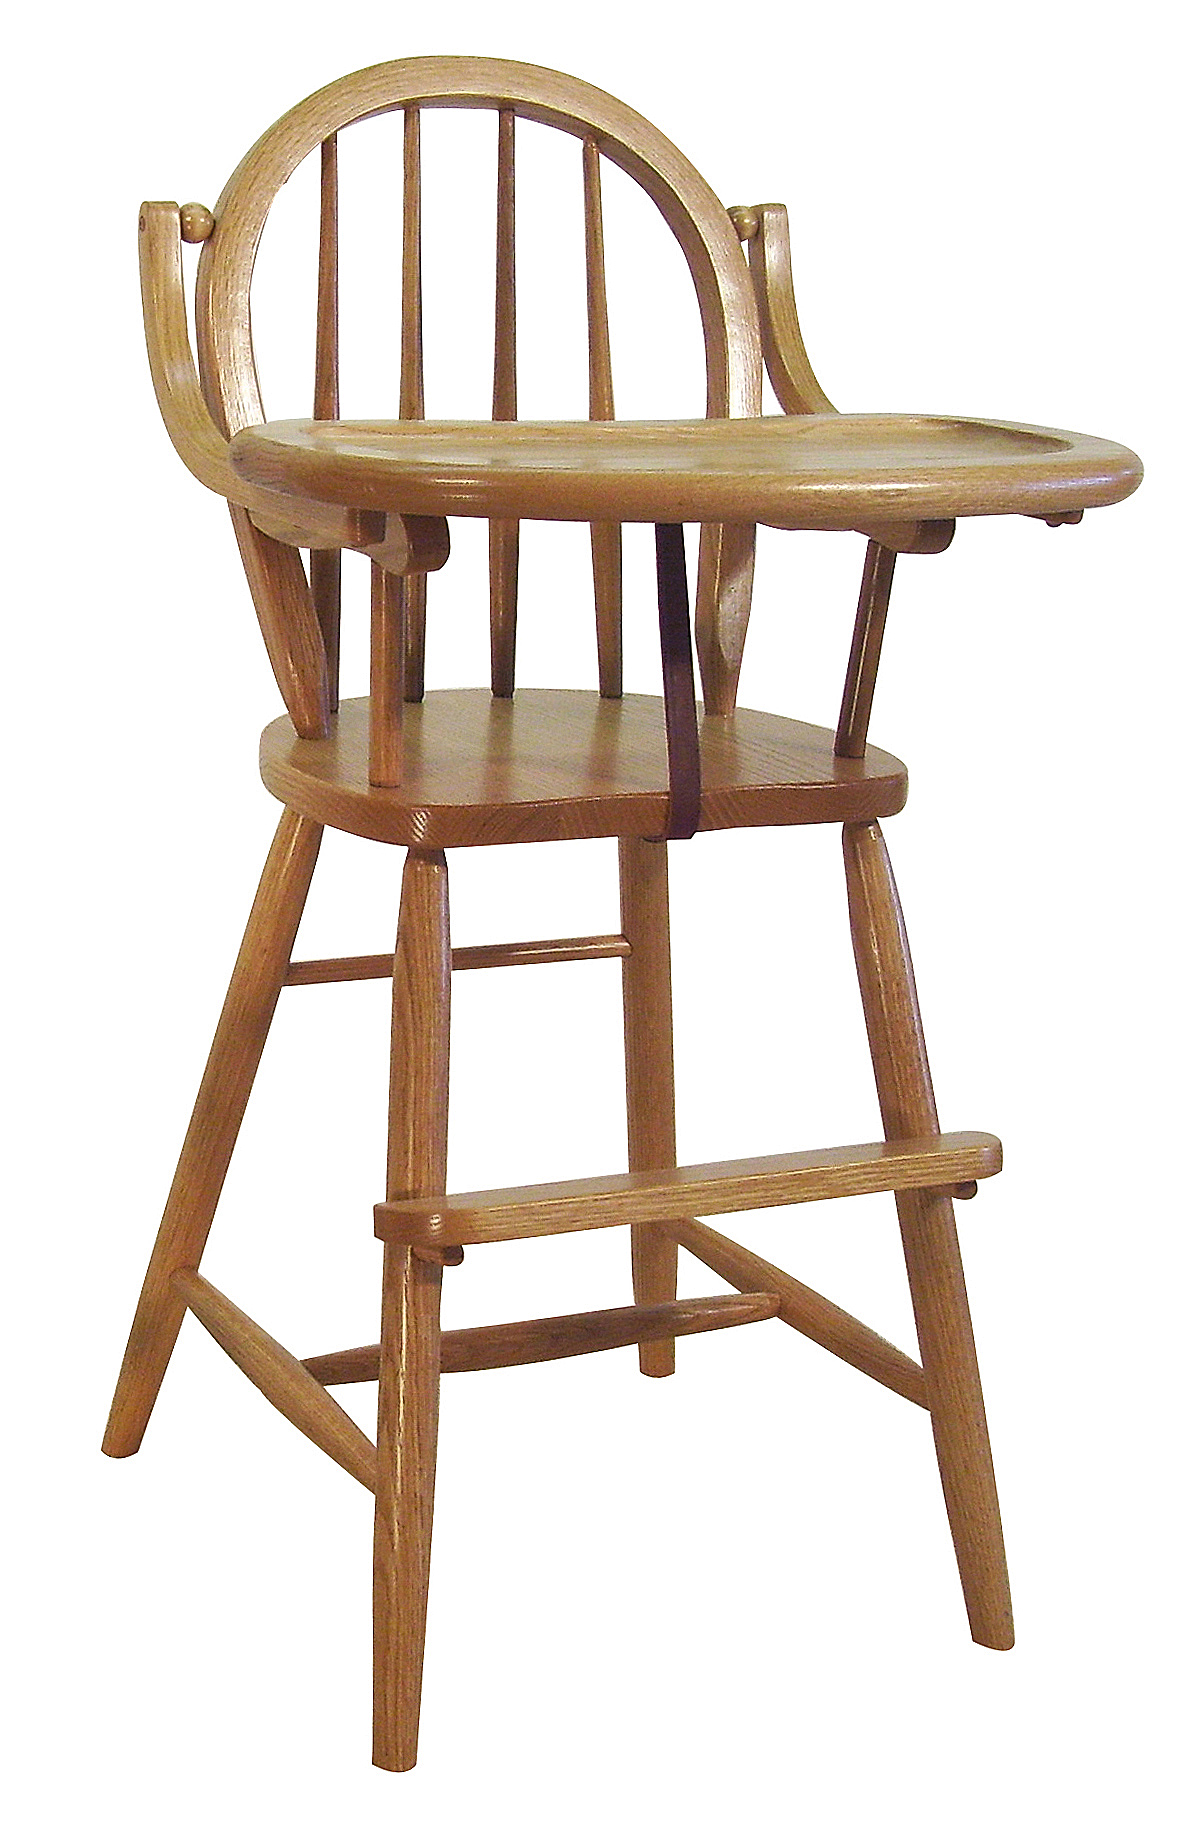 Wooden High Chairs For Babies Baby Furniture Wood High Chair Amish Bow Back